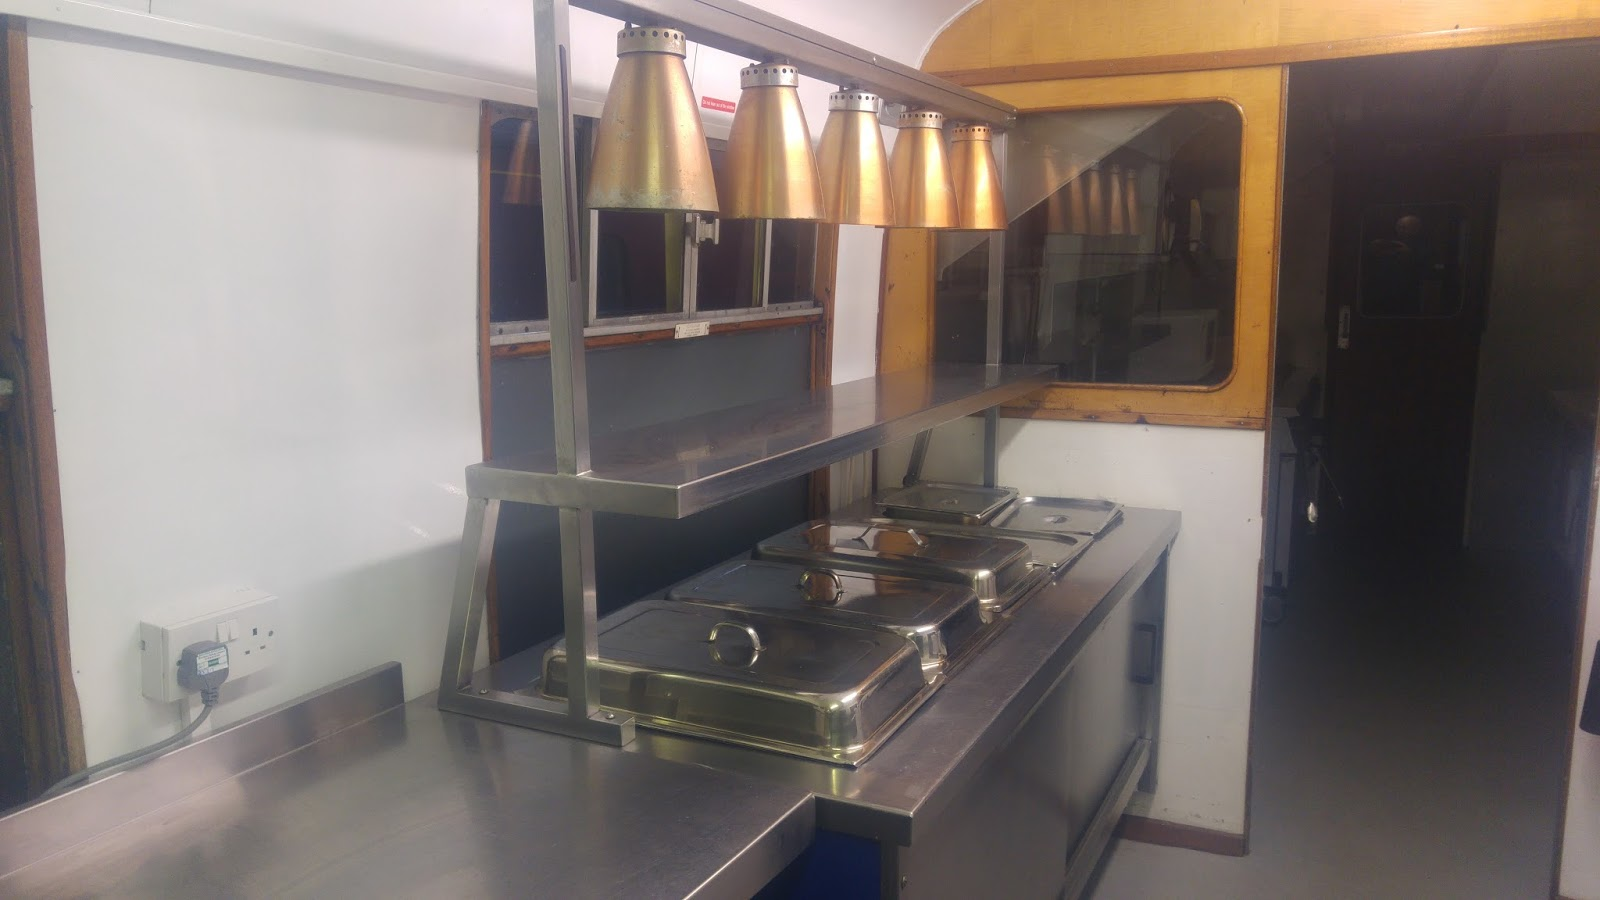 restoring coaches at aviemore april into may